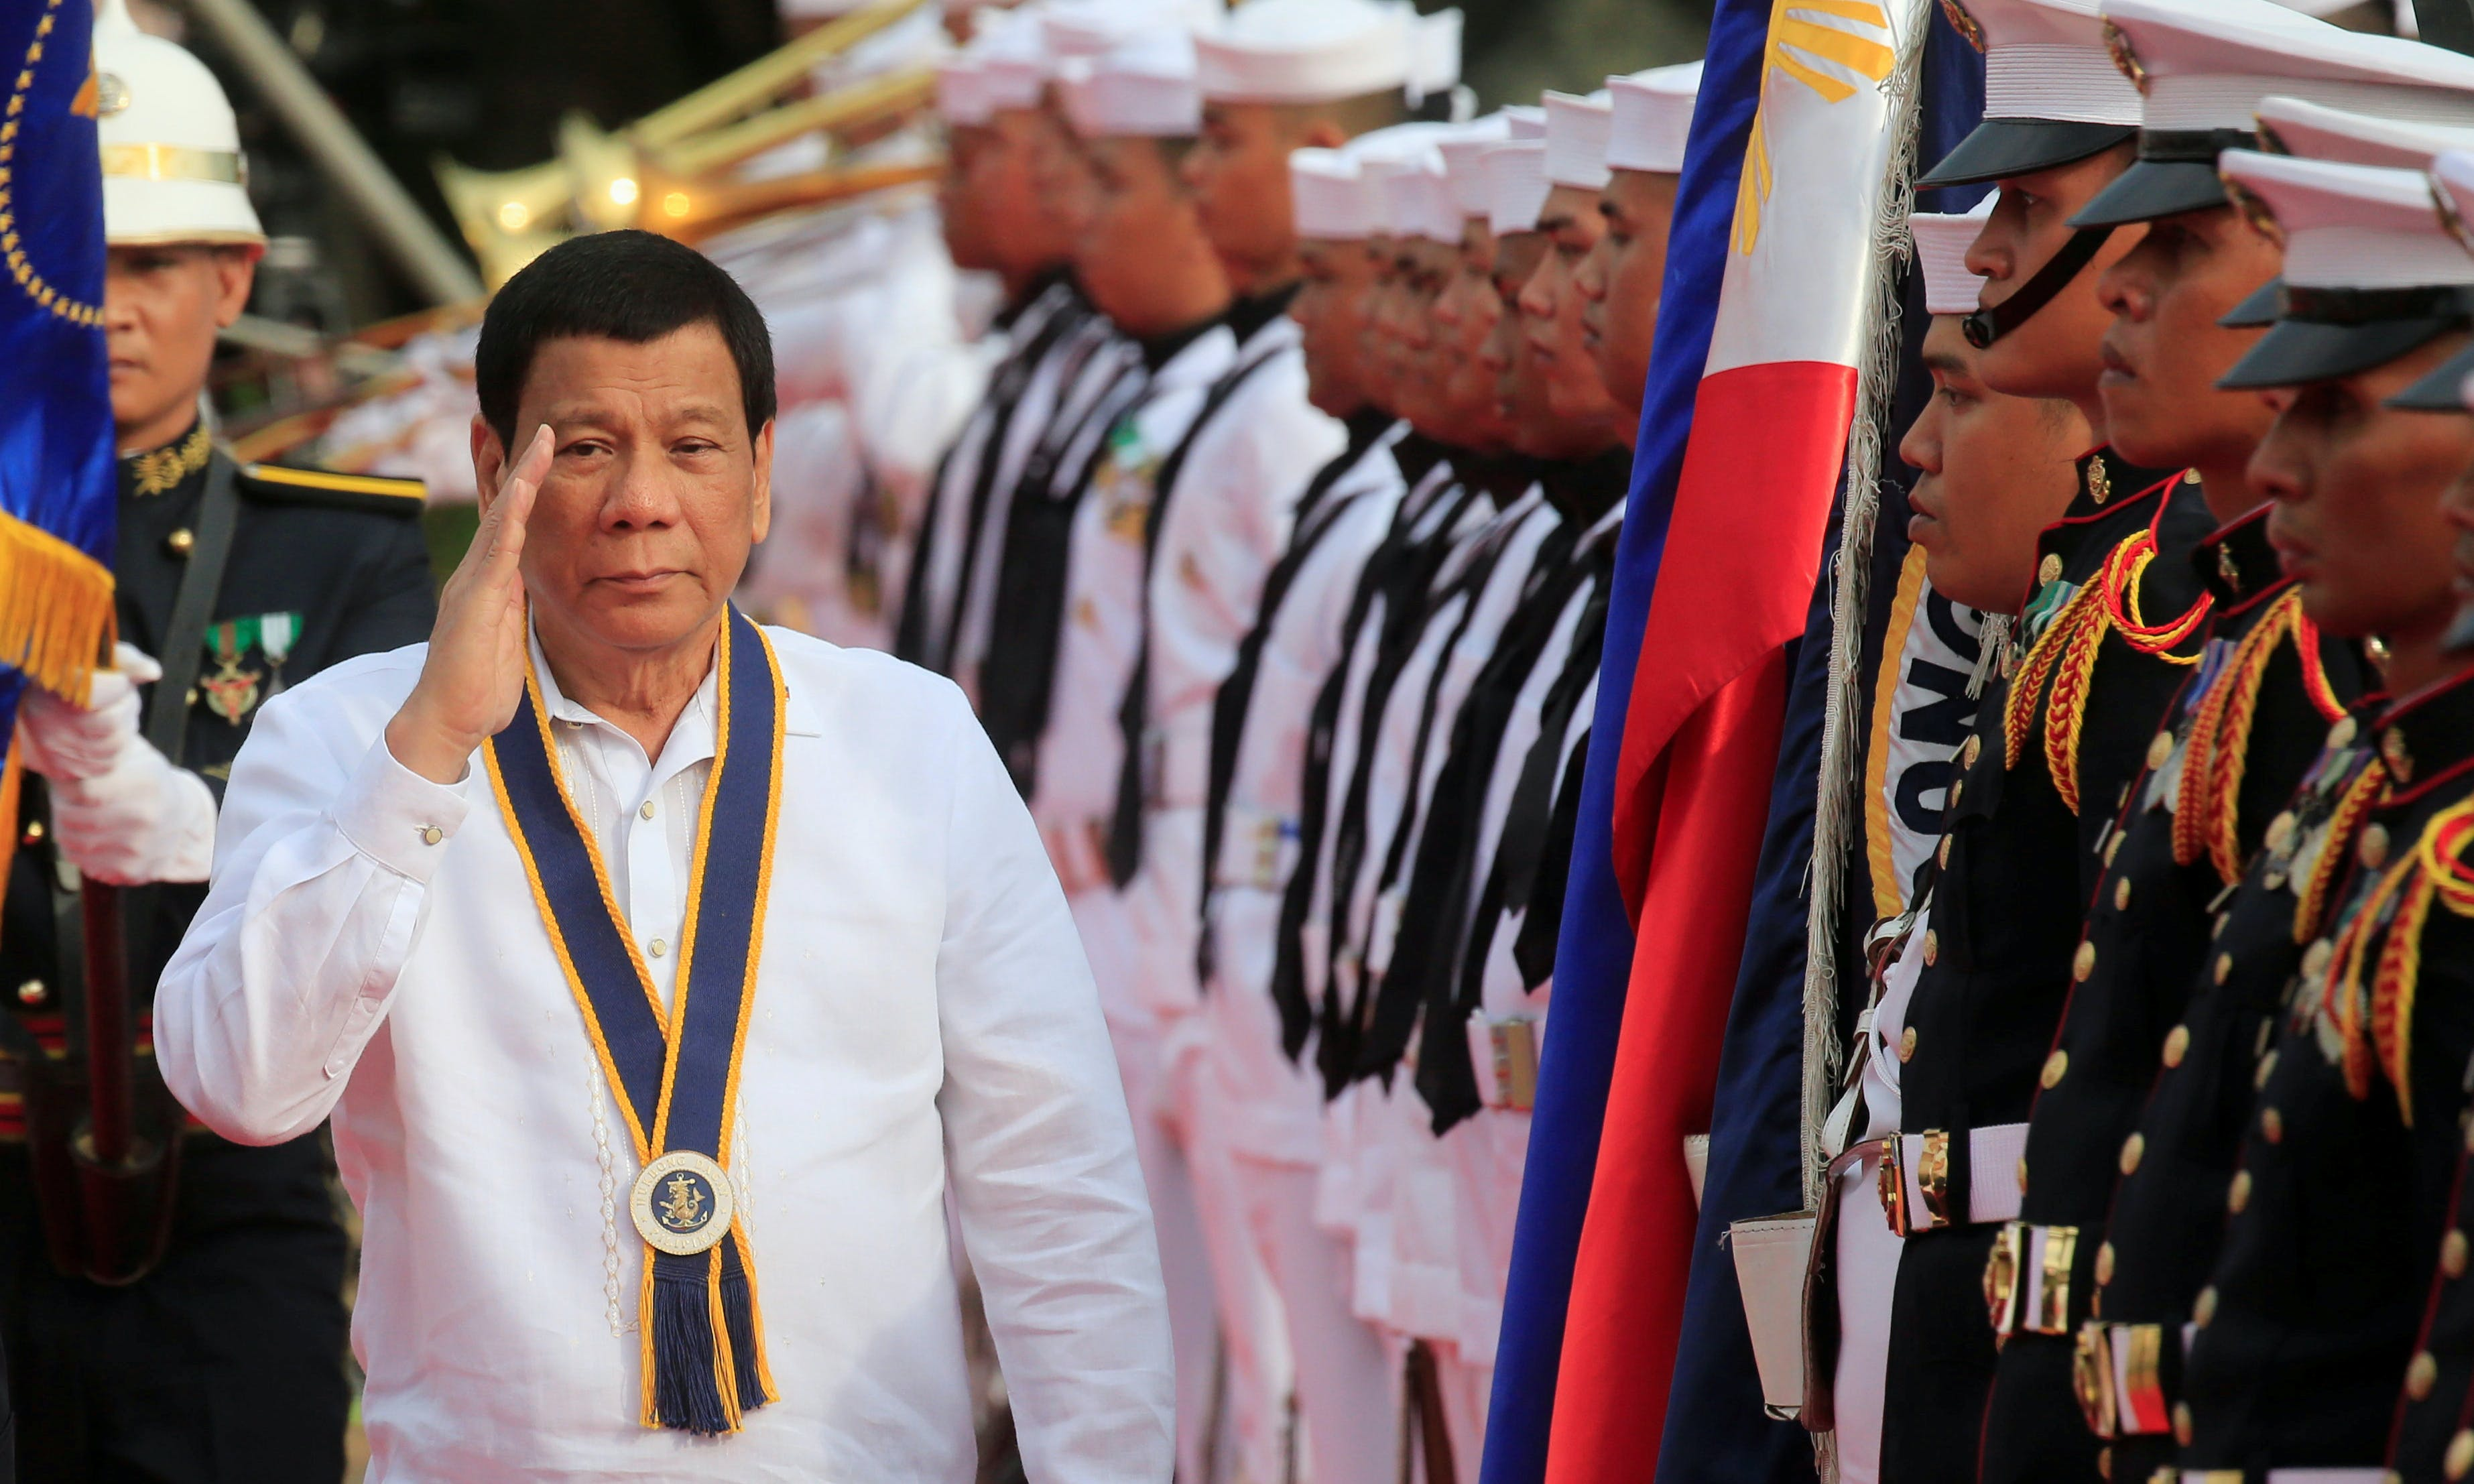 PHILIPPINES: Has Duterte Changed the Rules Ahead of Midterm Elections?